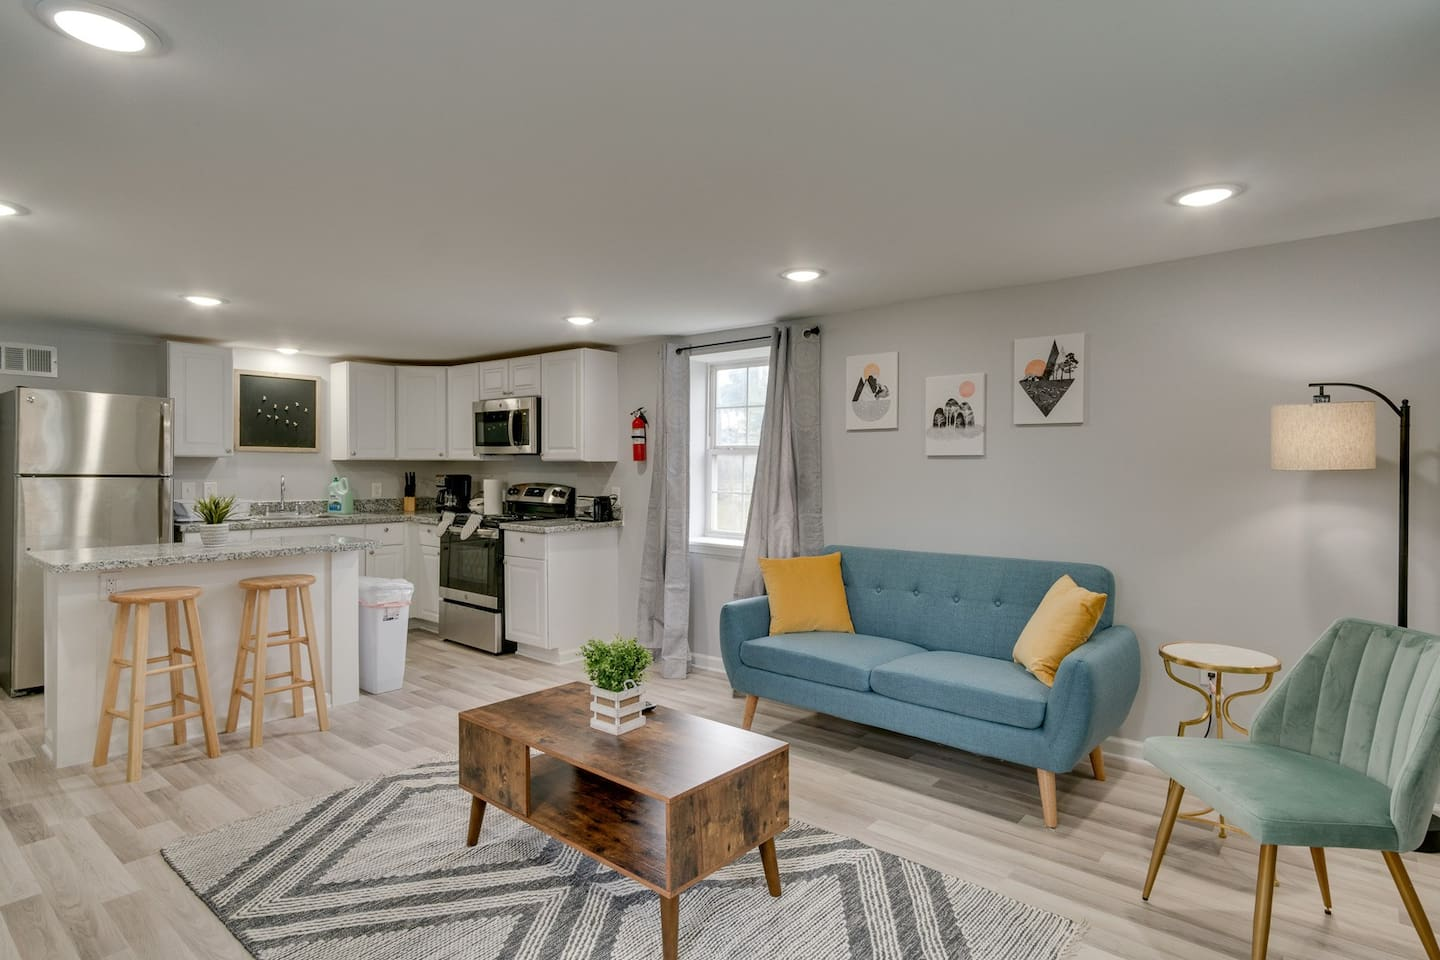 Living room equipped with all amenities and smart TV